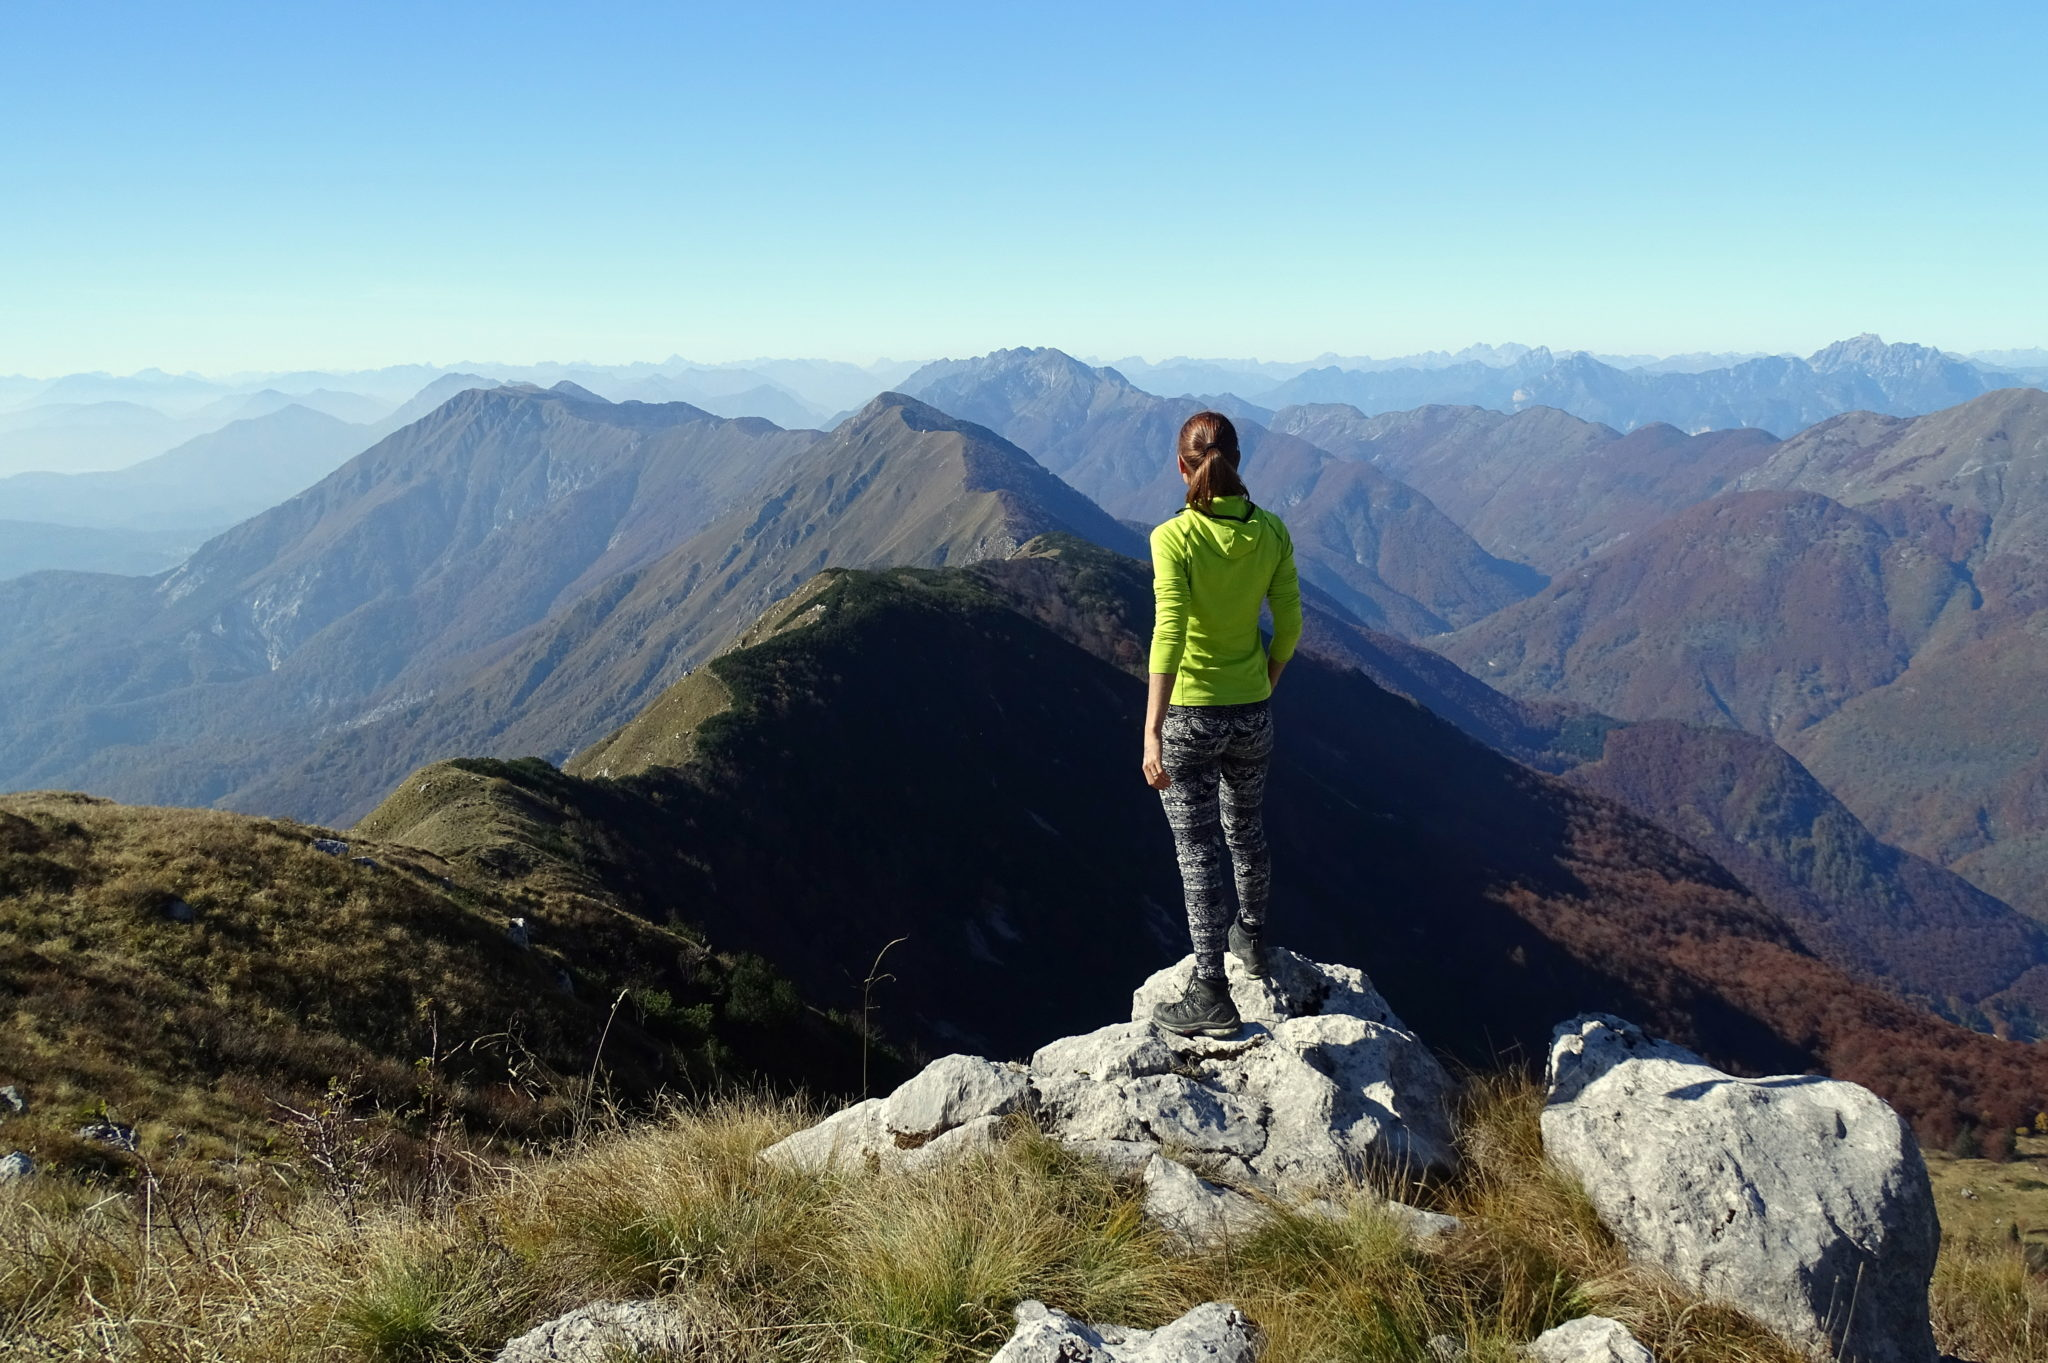 Hiking the longest massif in the Julian Alps, the Stol massif.